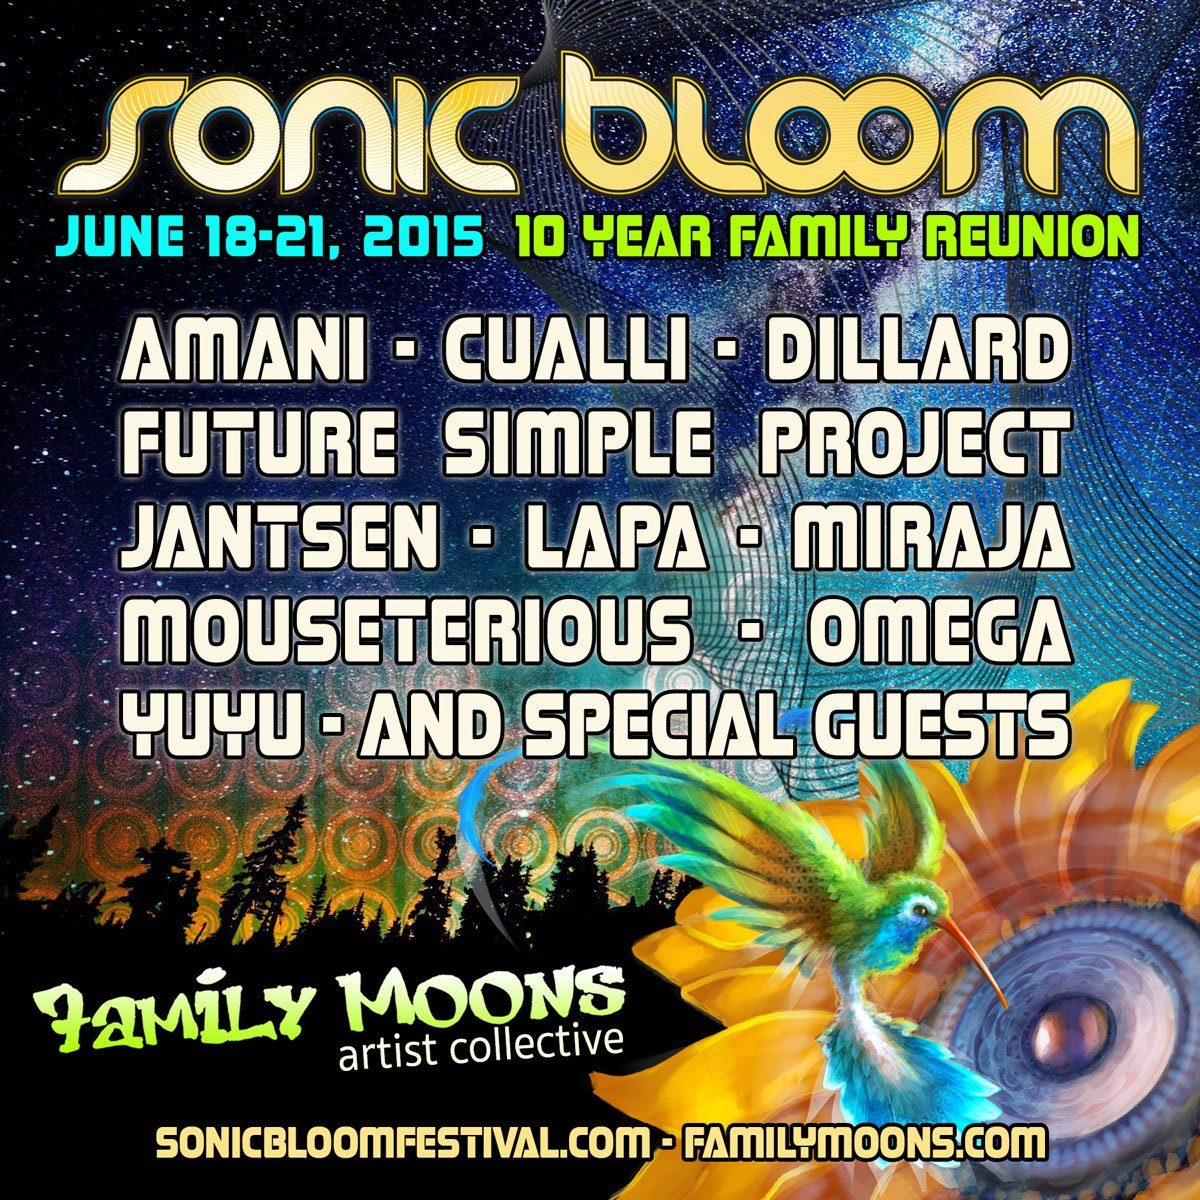 Family Moons Artist @ Sonic Bloom 10 Year!